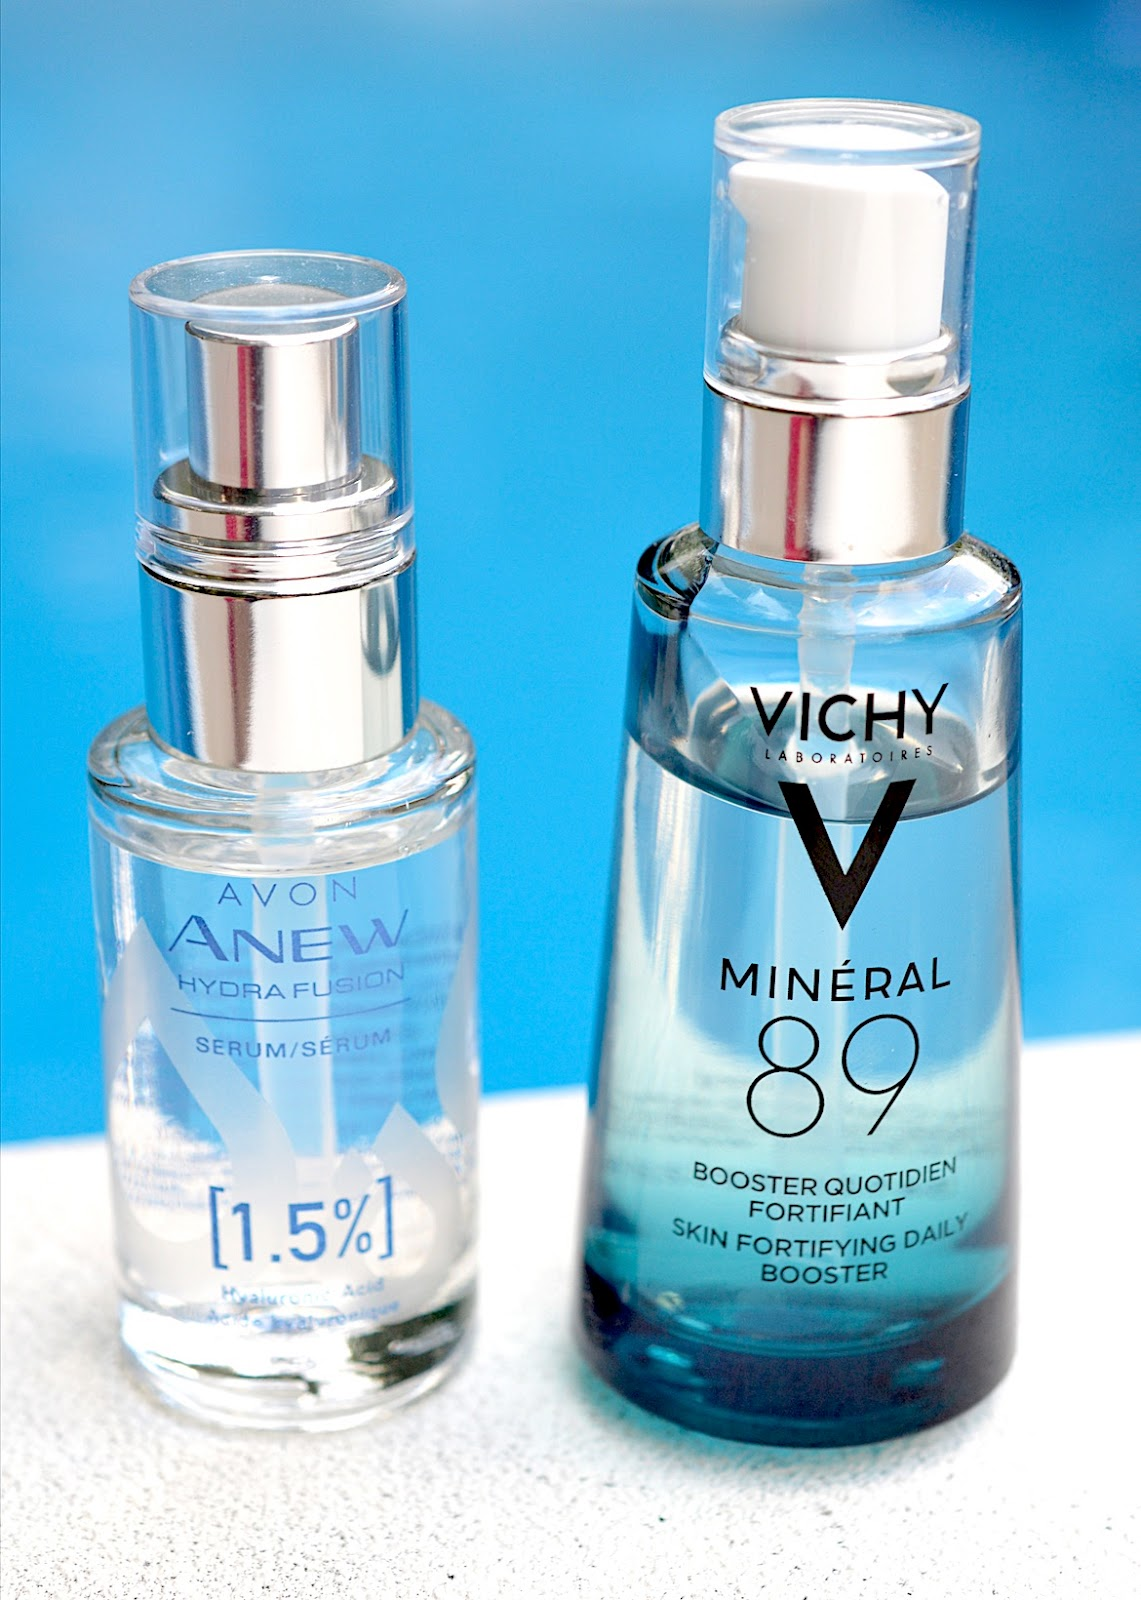 Review Vichy Mineral 89